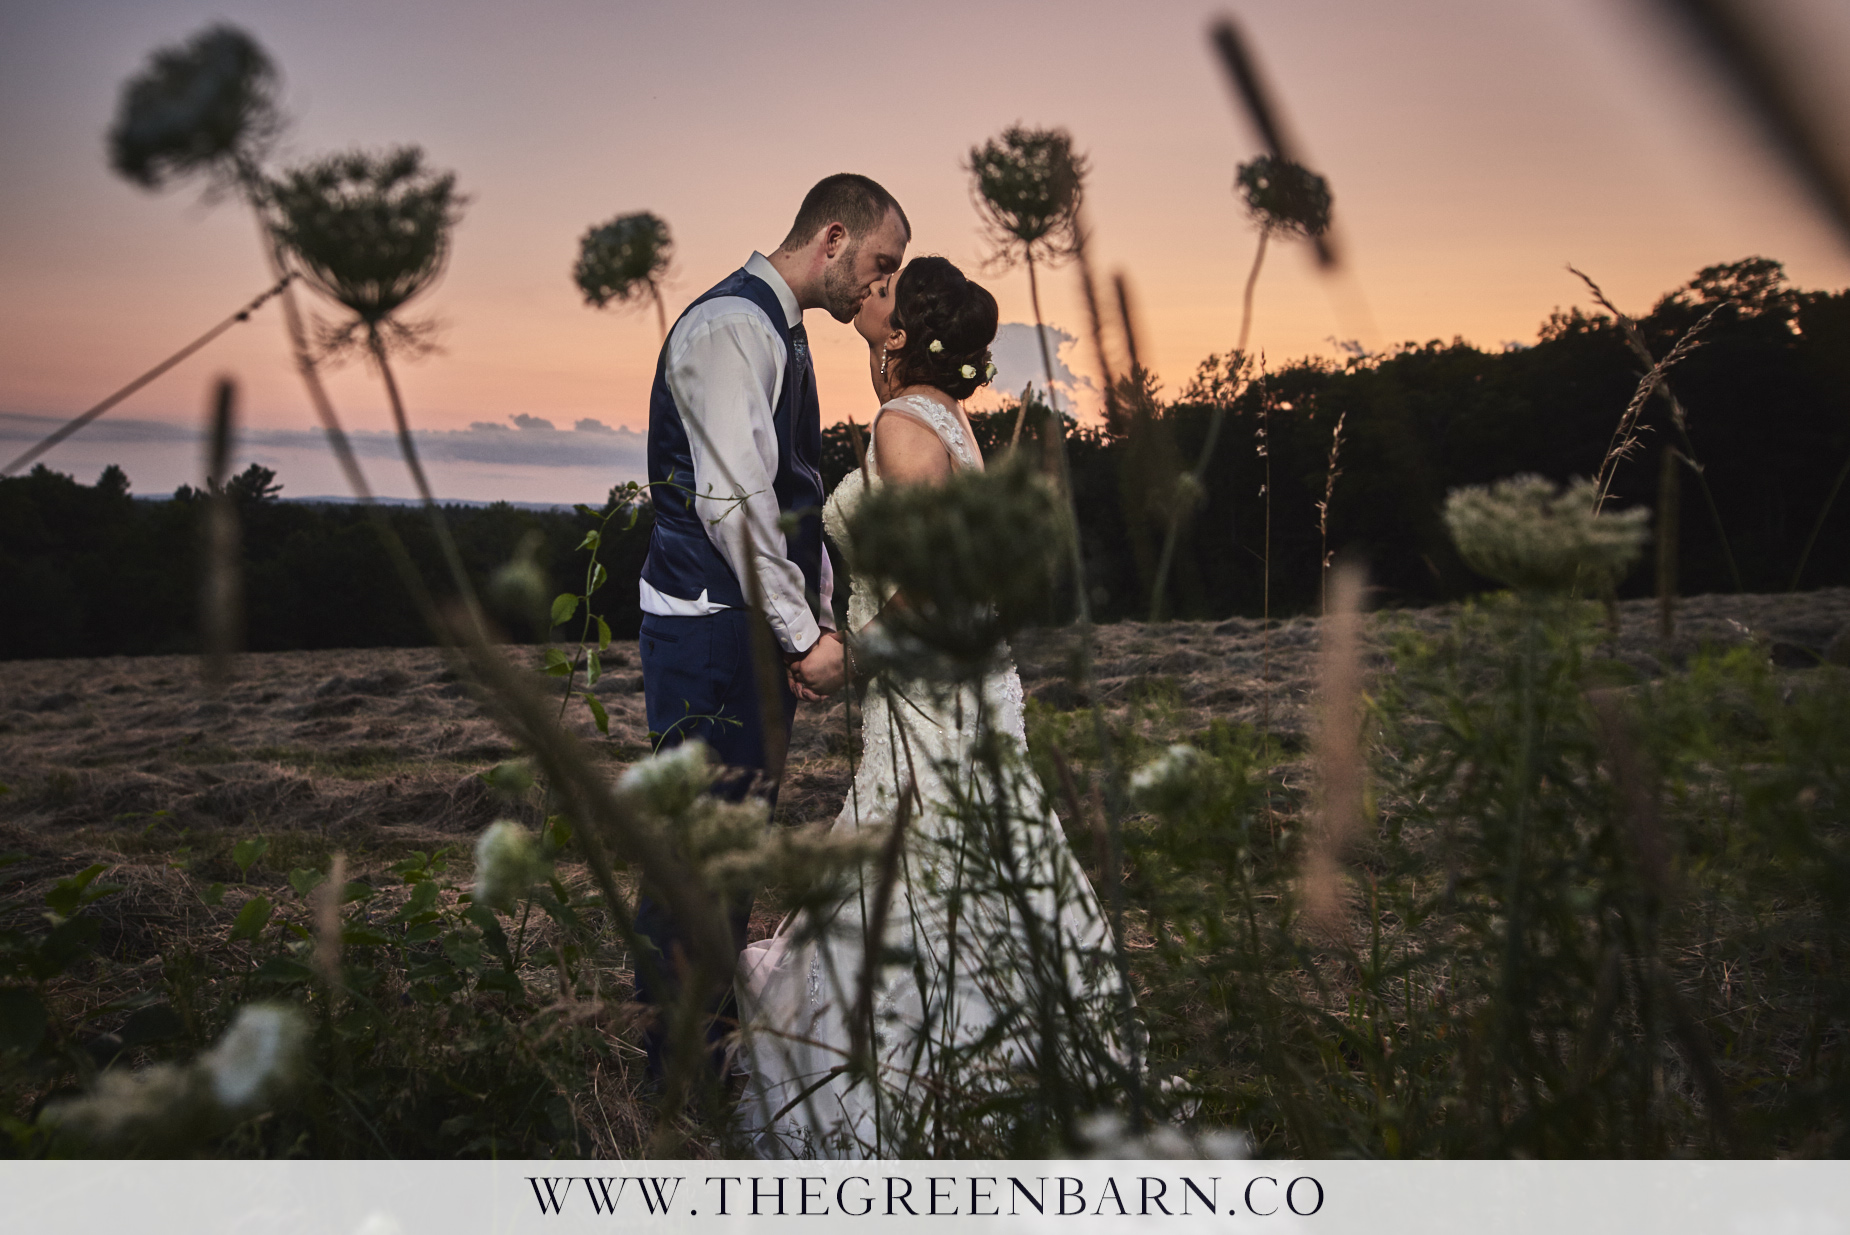 Bride and Groom Kissing at Sunset in the Field at Harrington Farm Photo by Cate Bligh of The Green Barn Wedding Photography LLC